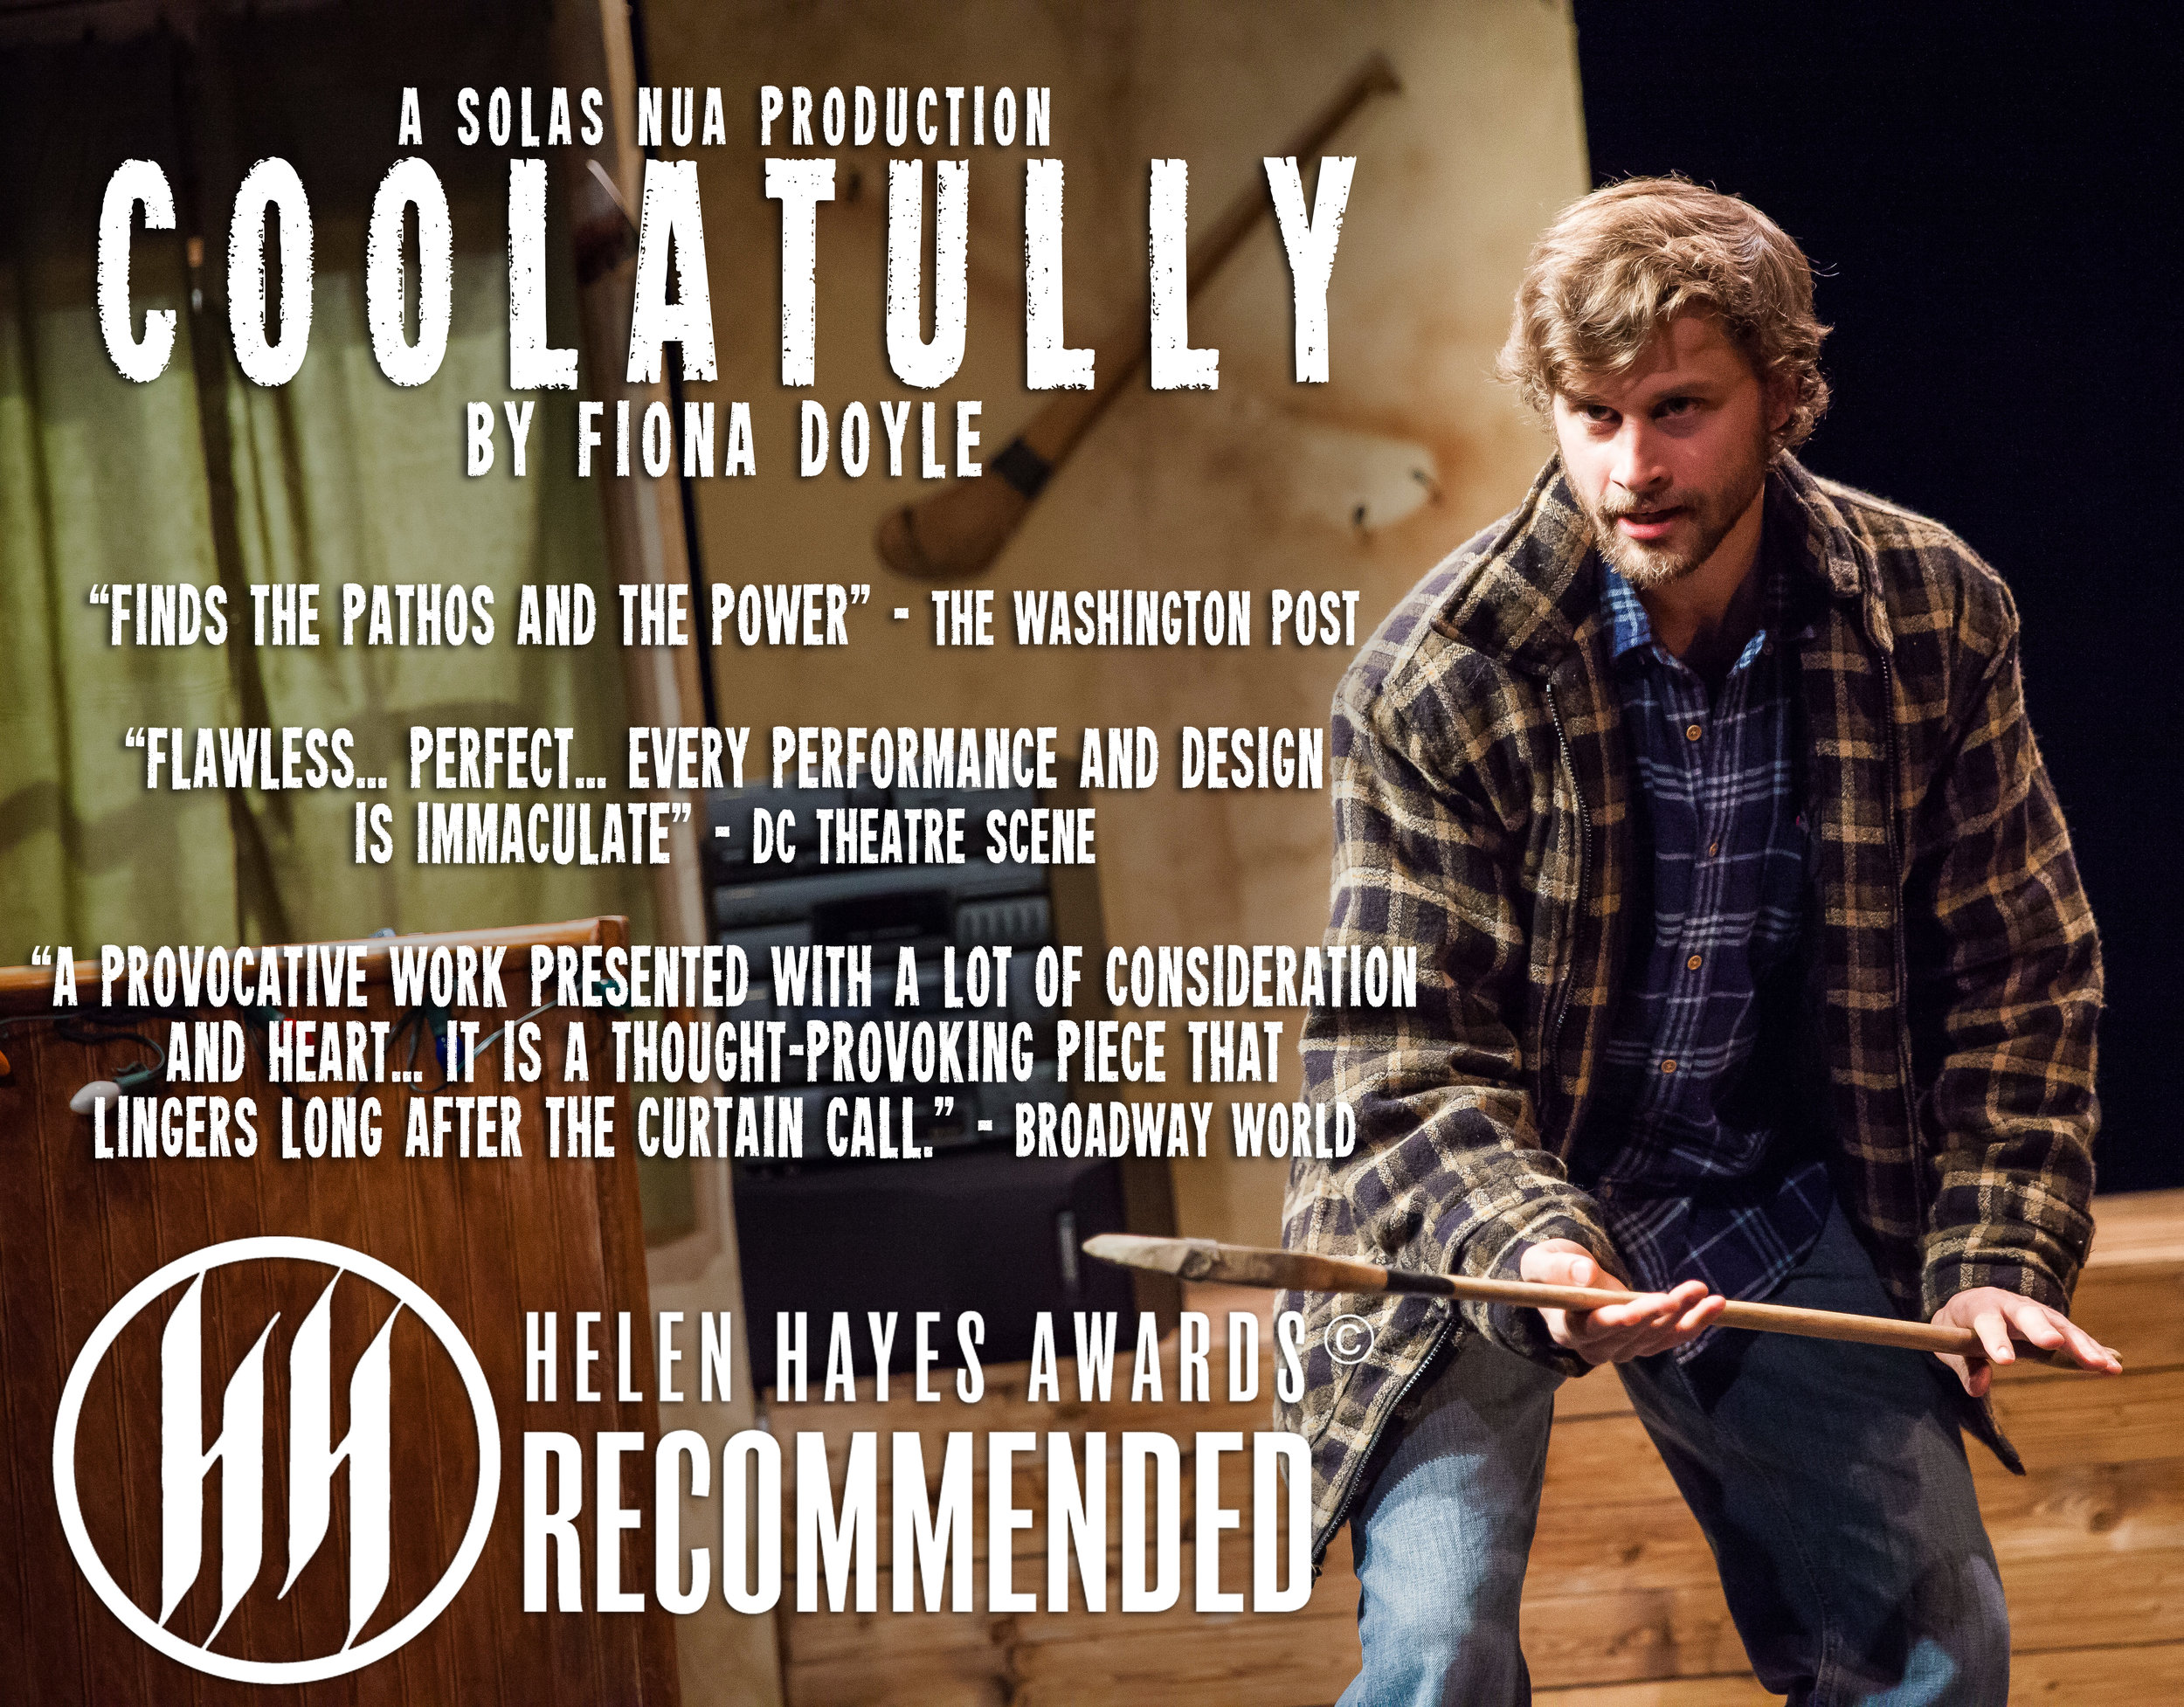 Coolatully  by Fiona Doyle - American premiere production - March 2017